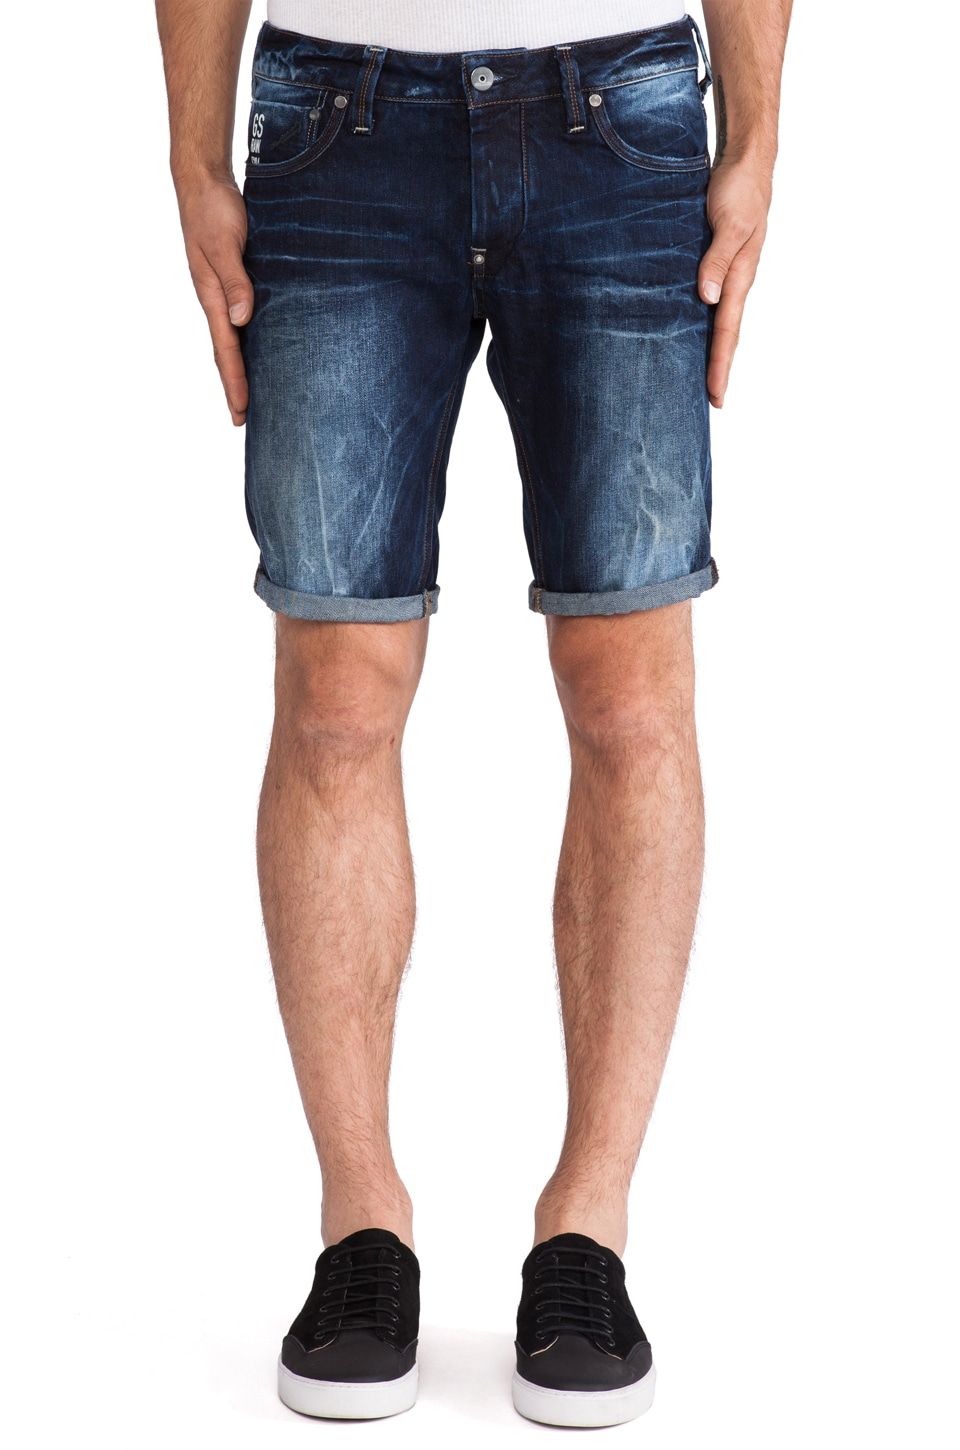 G-Star Attacc Low Short in Medium Aged